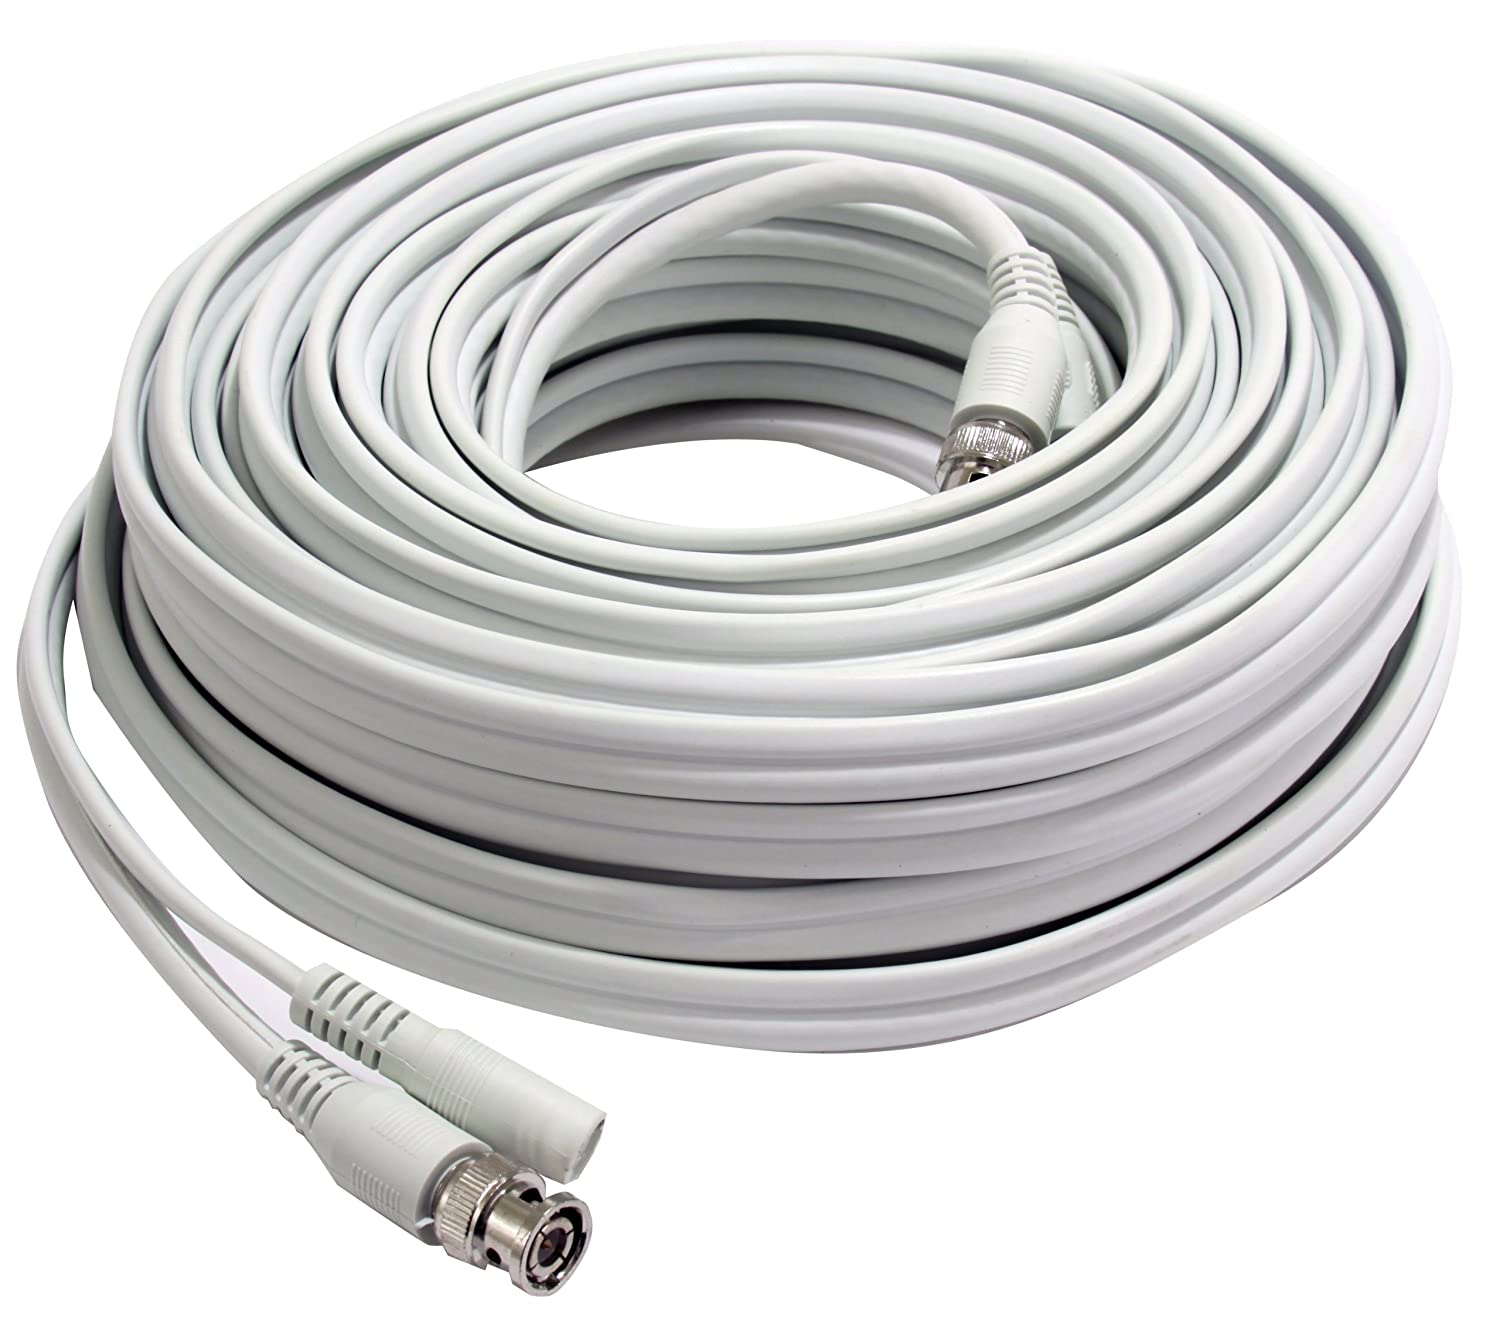 Coaxial Cable With Power Wire - Dolgular.com